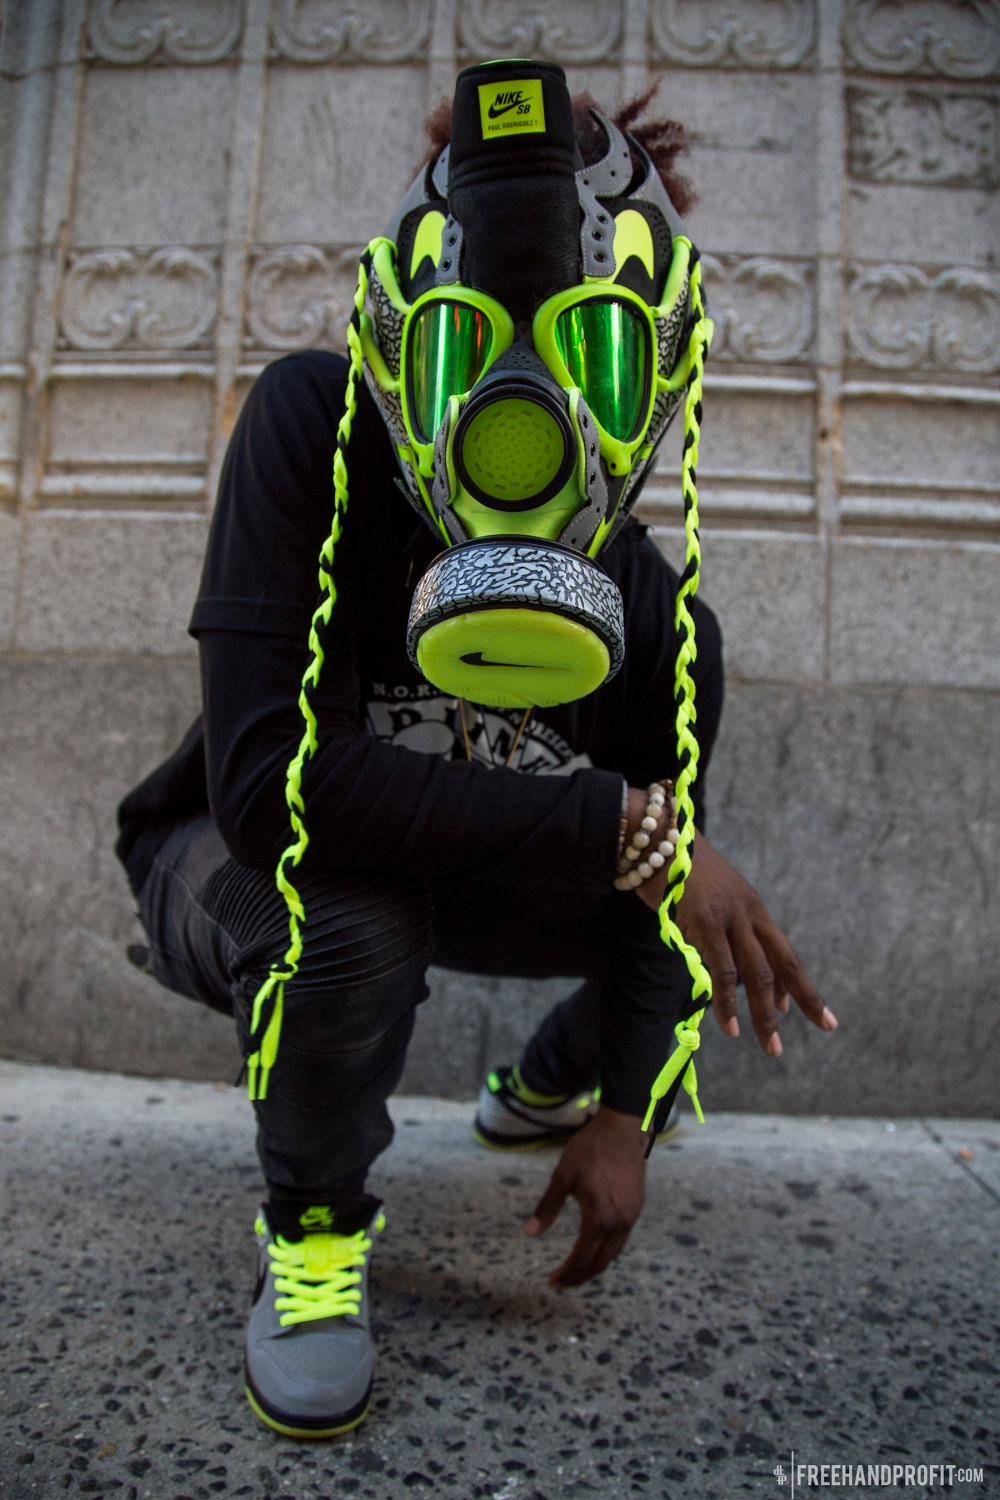 112 x Nike PRod7 Sneaker Gas Mask by Freehand Profit